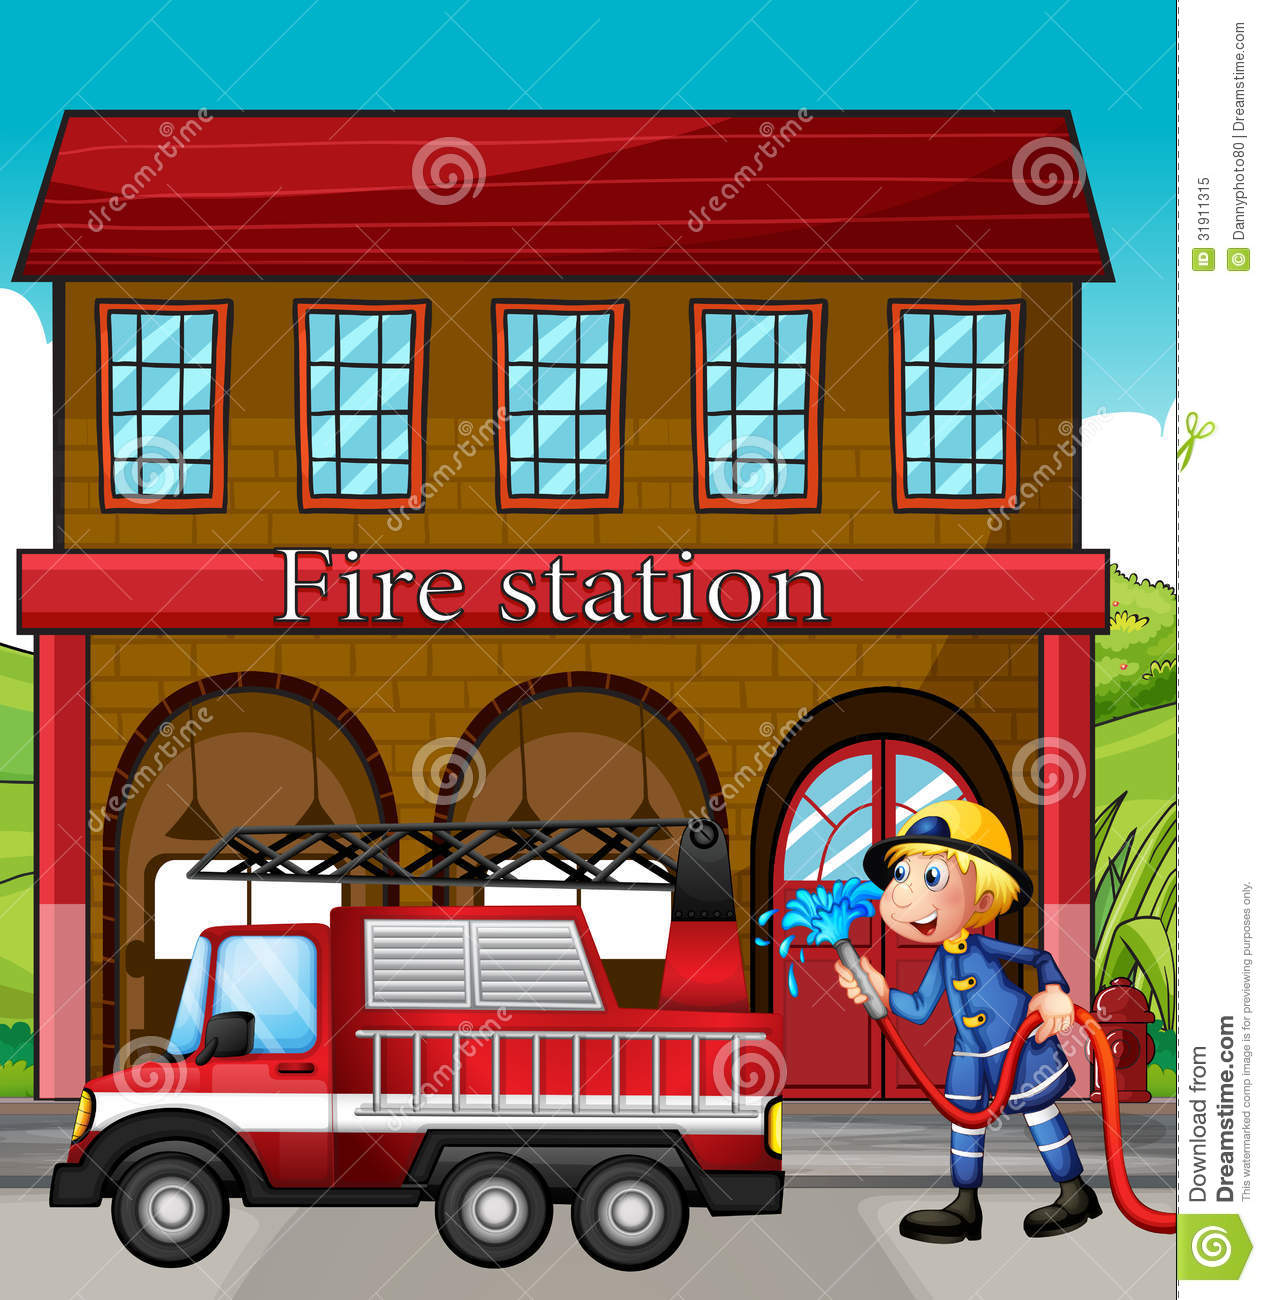 hight resolution of fire station clipart 4